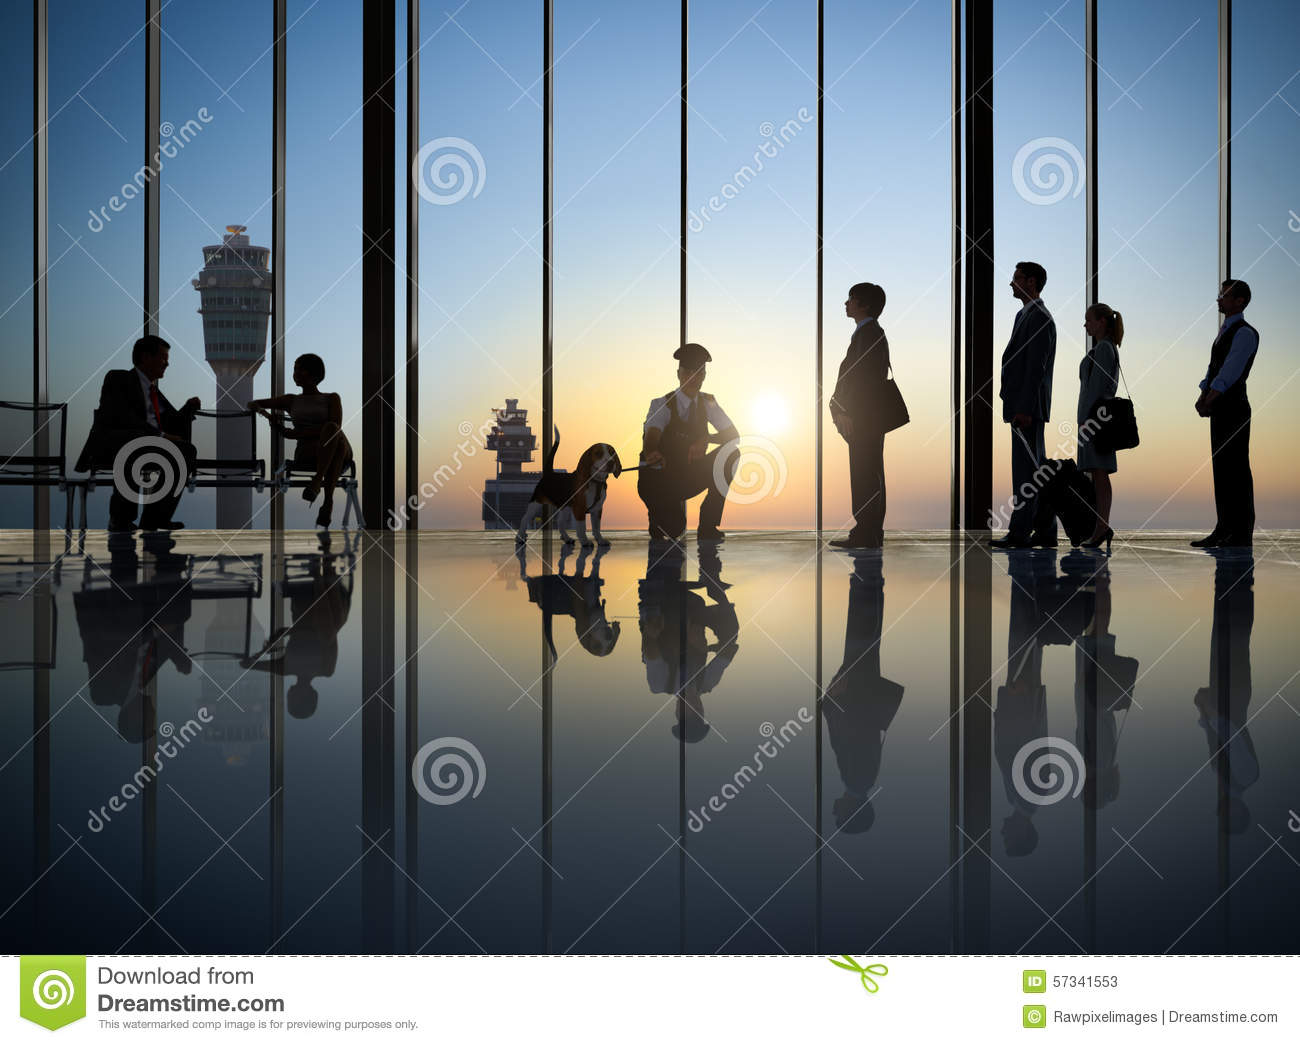 Free Images Traveling People Airport Bridge Business: Business People Airport Security System Business Travel